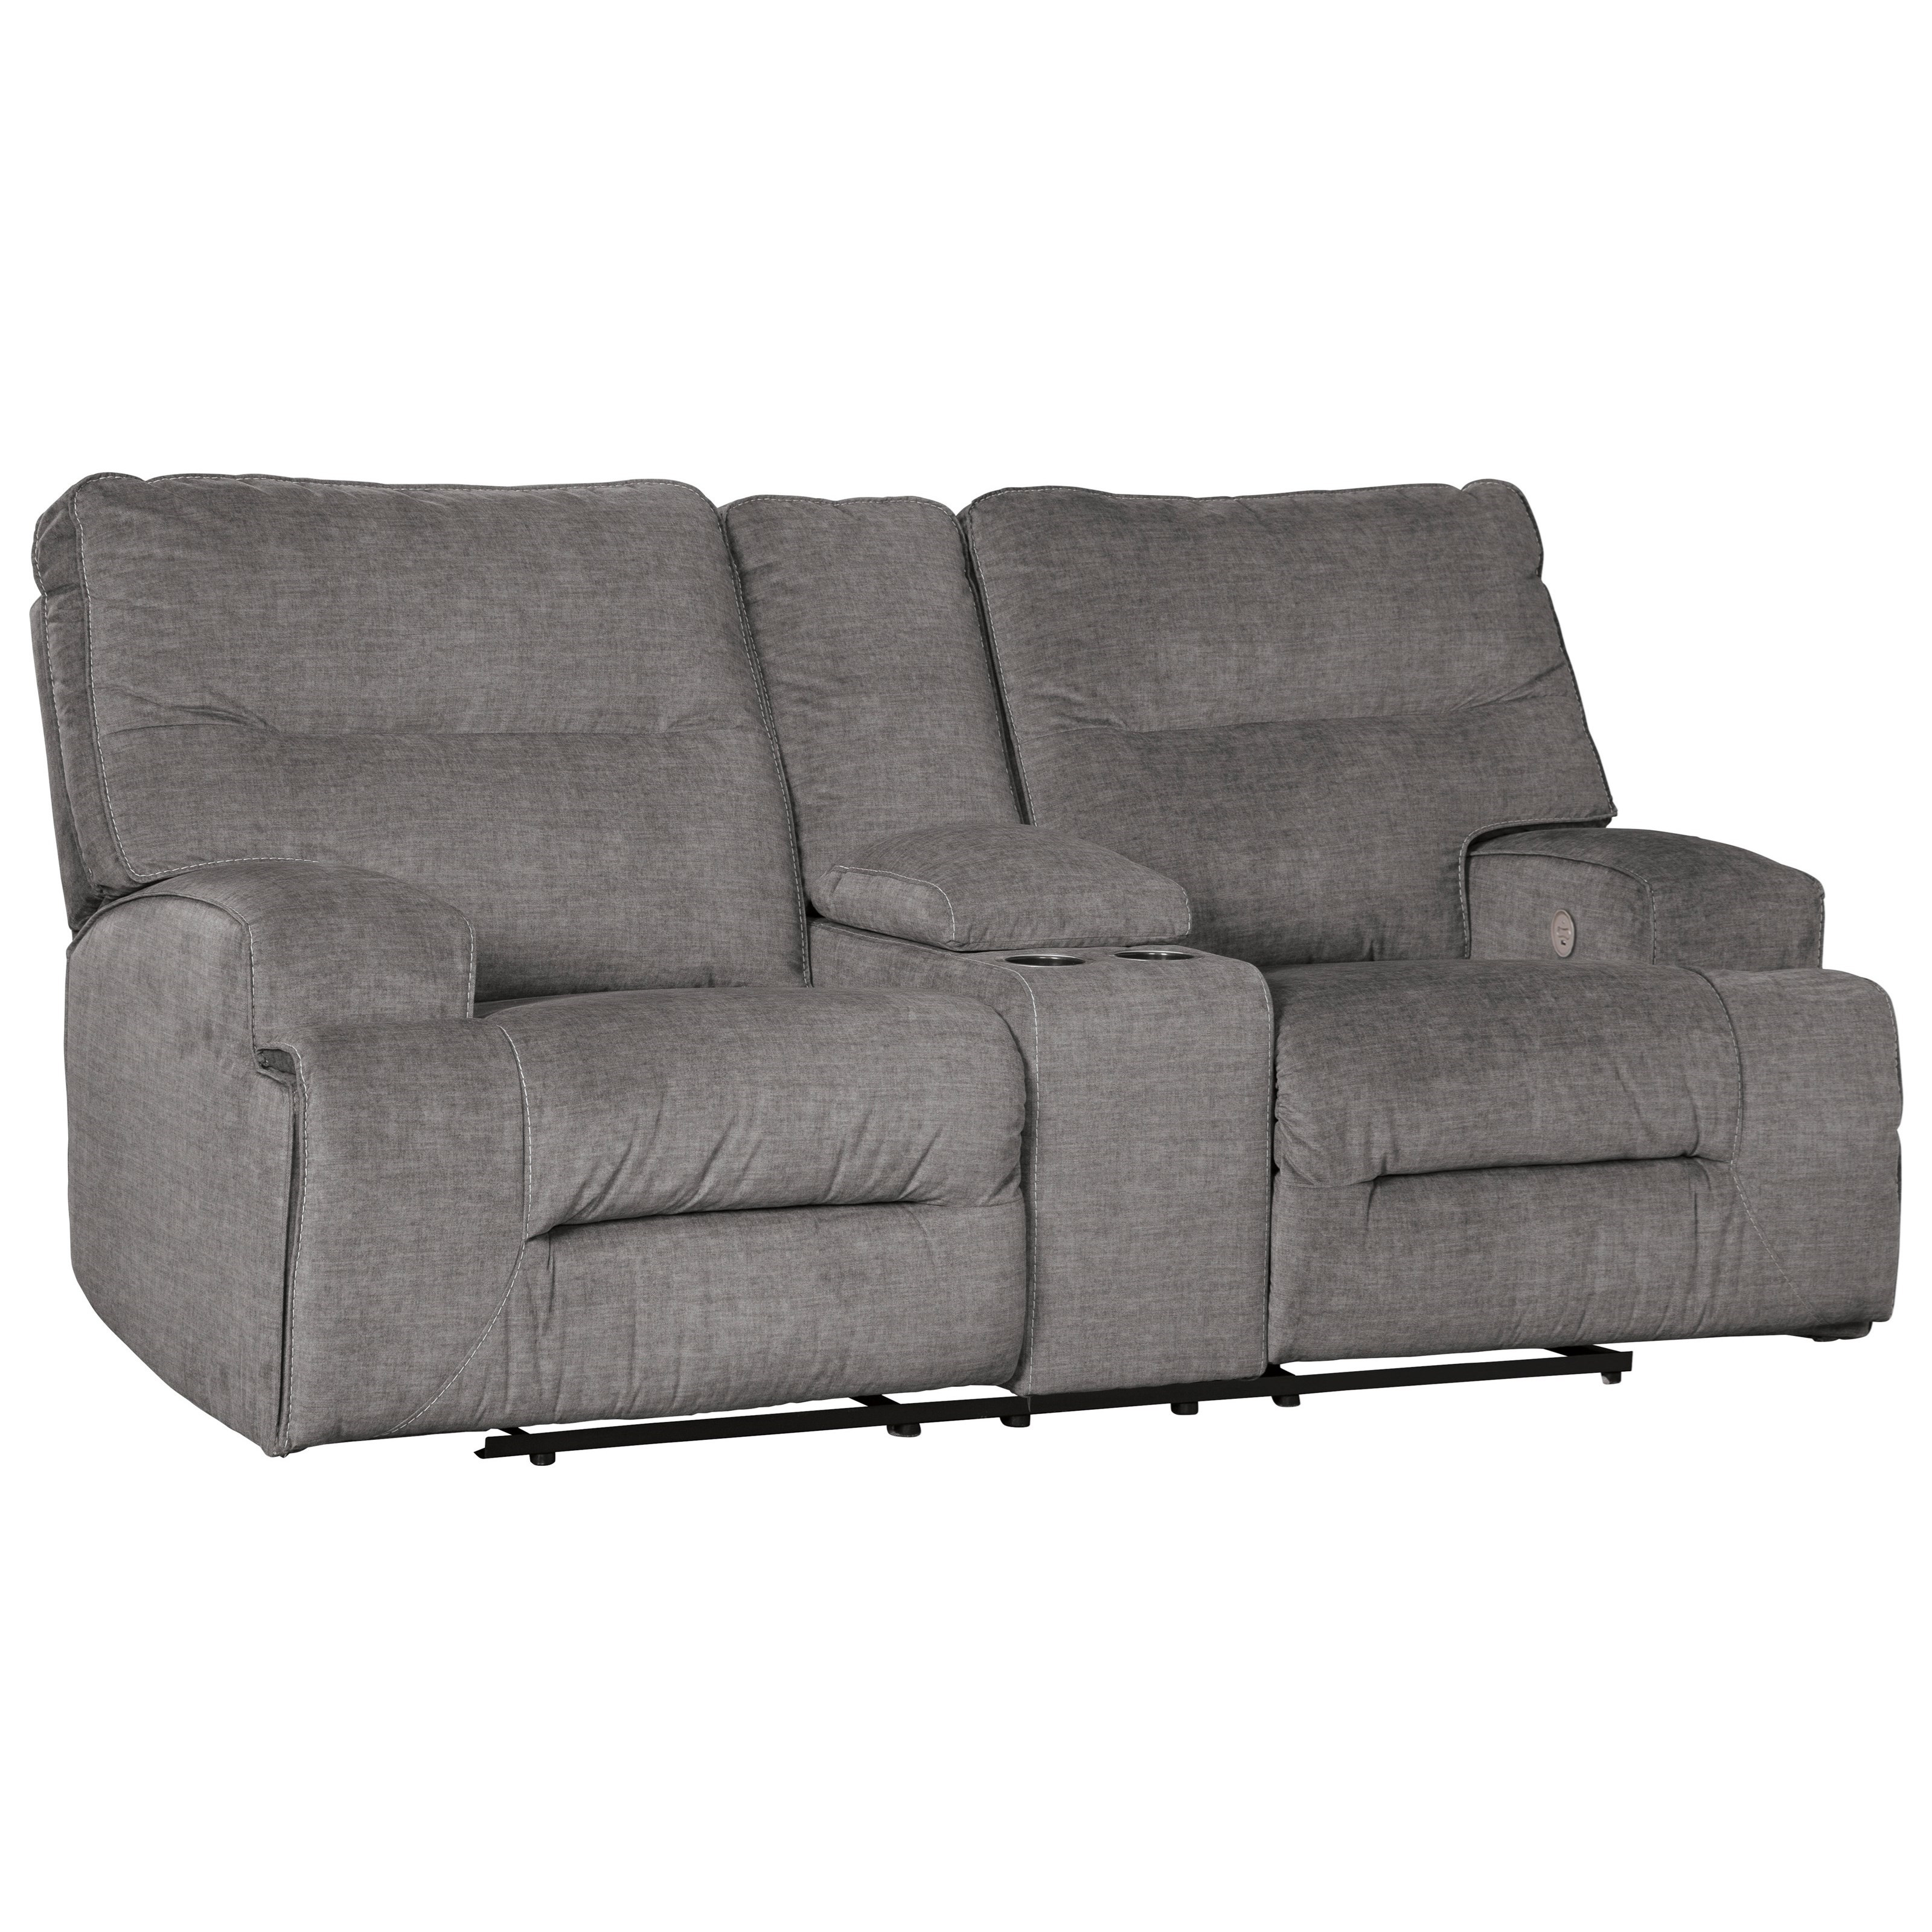 Coombs Double Reclining Power Loveseat w/ Console by Benchcraft at Miller Waldrop Furniture and Decor